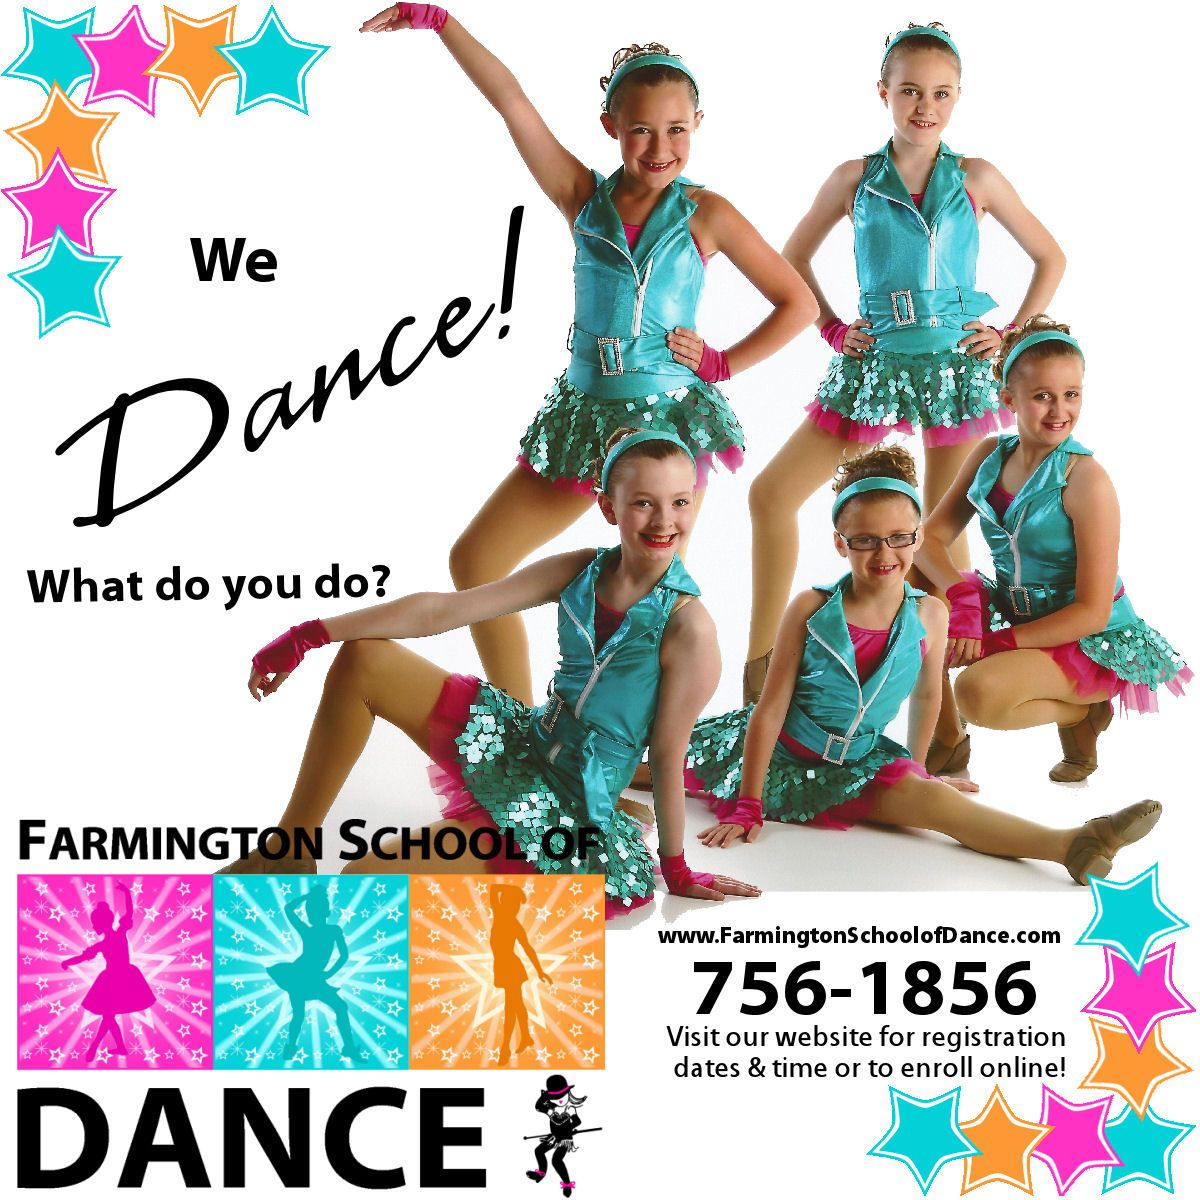 Fsdance Pin It To Win Every Pin Enters You In Our Drawing On September 30th For A Dance Bag And Fsd T Shirt See Our Facebook Dance Dance Bag Farmington